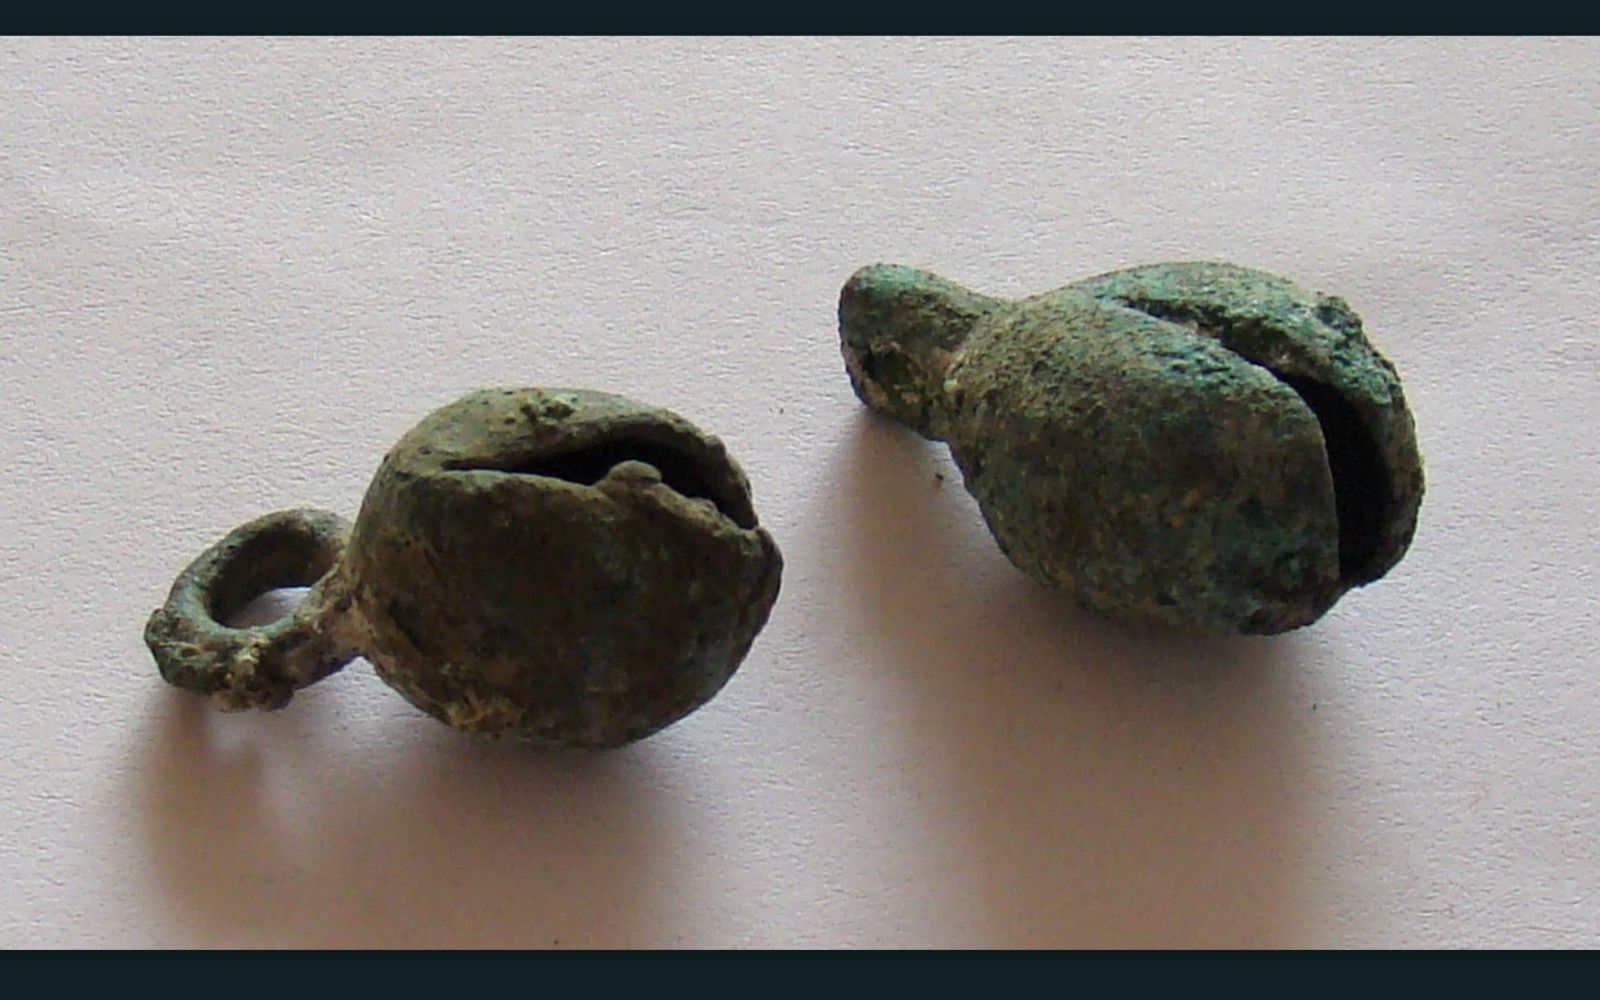 Ancient viking pair bronze bells, artifacts found in the Viking fortification area of Dublin, Ireland.